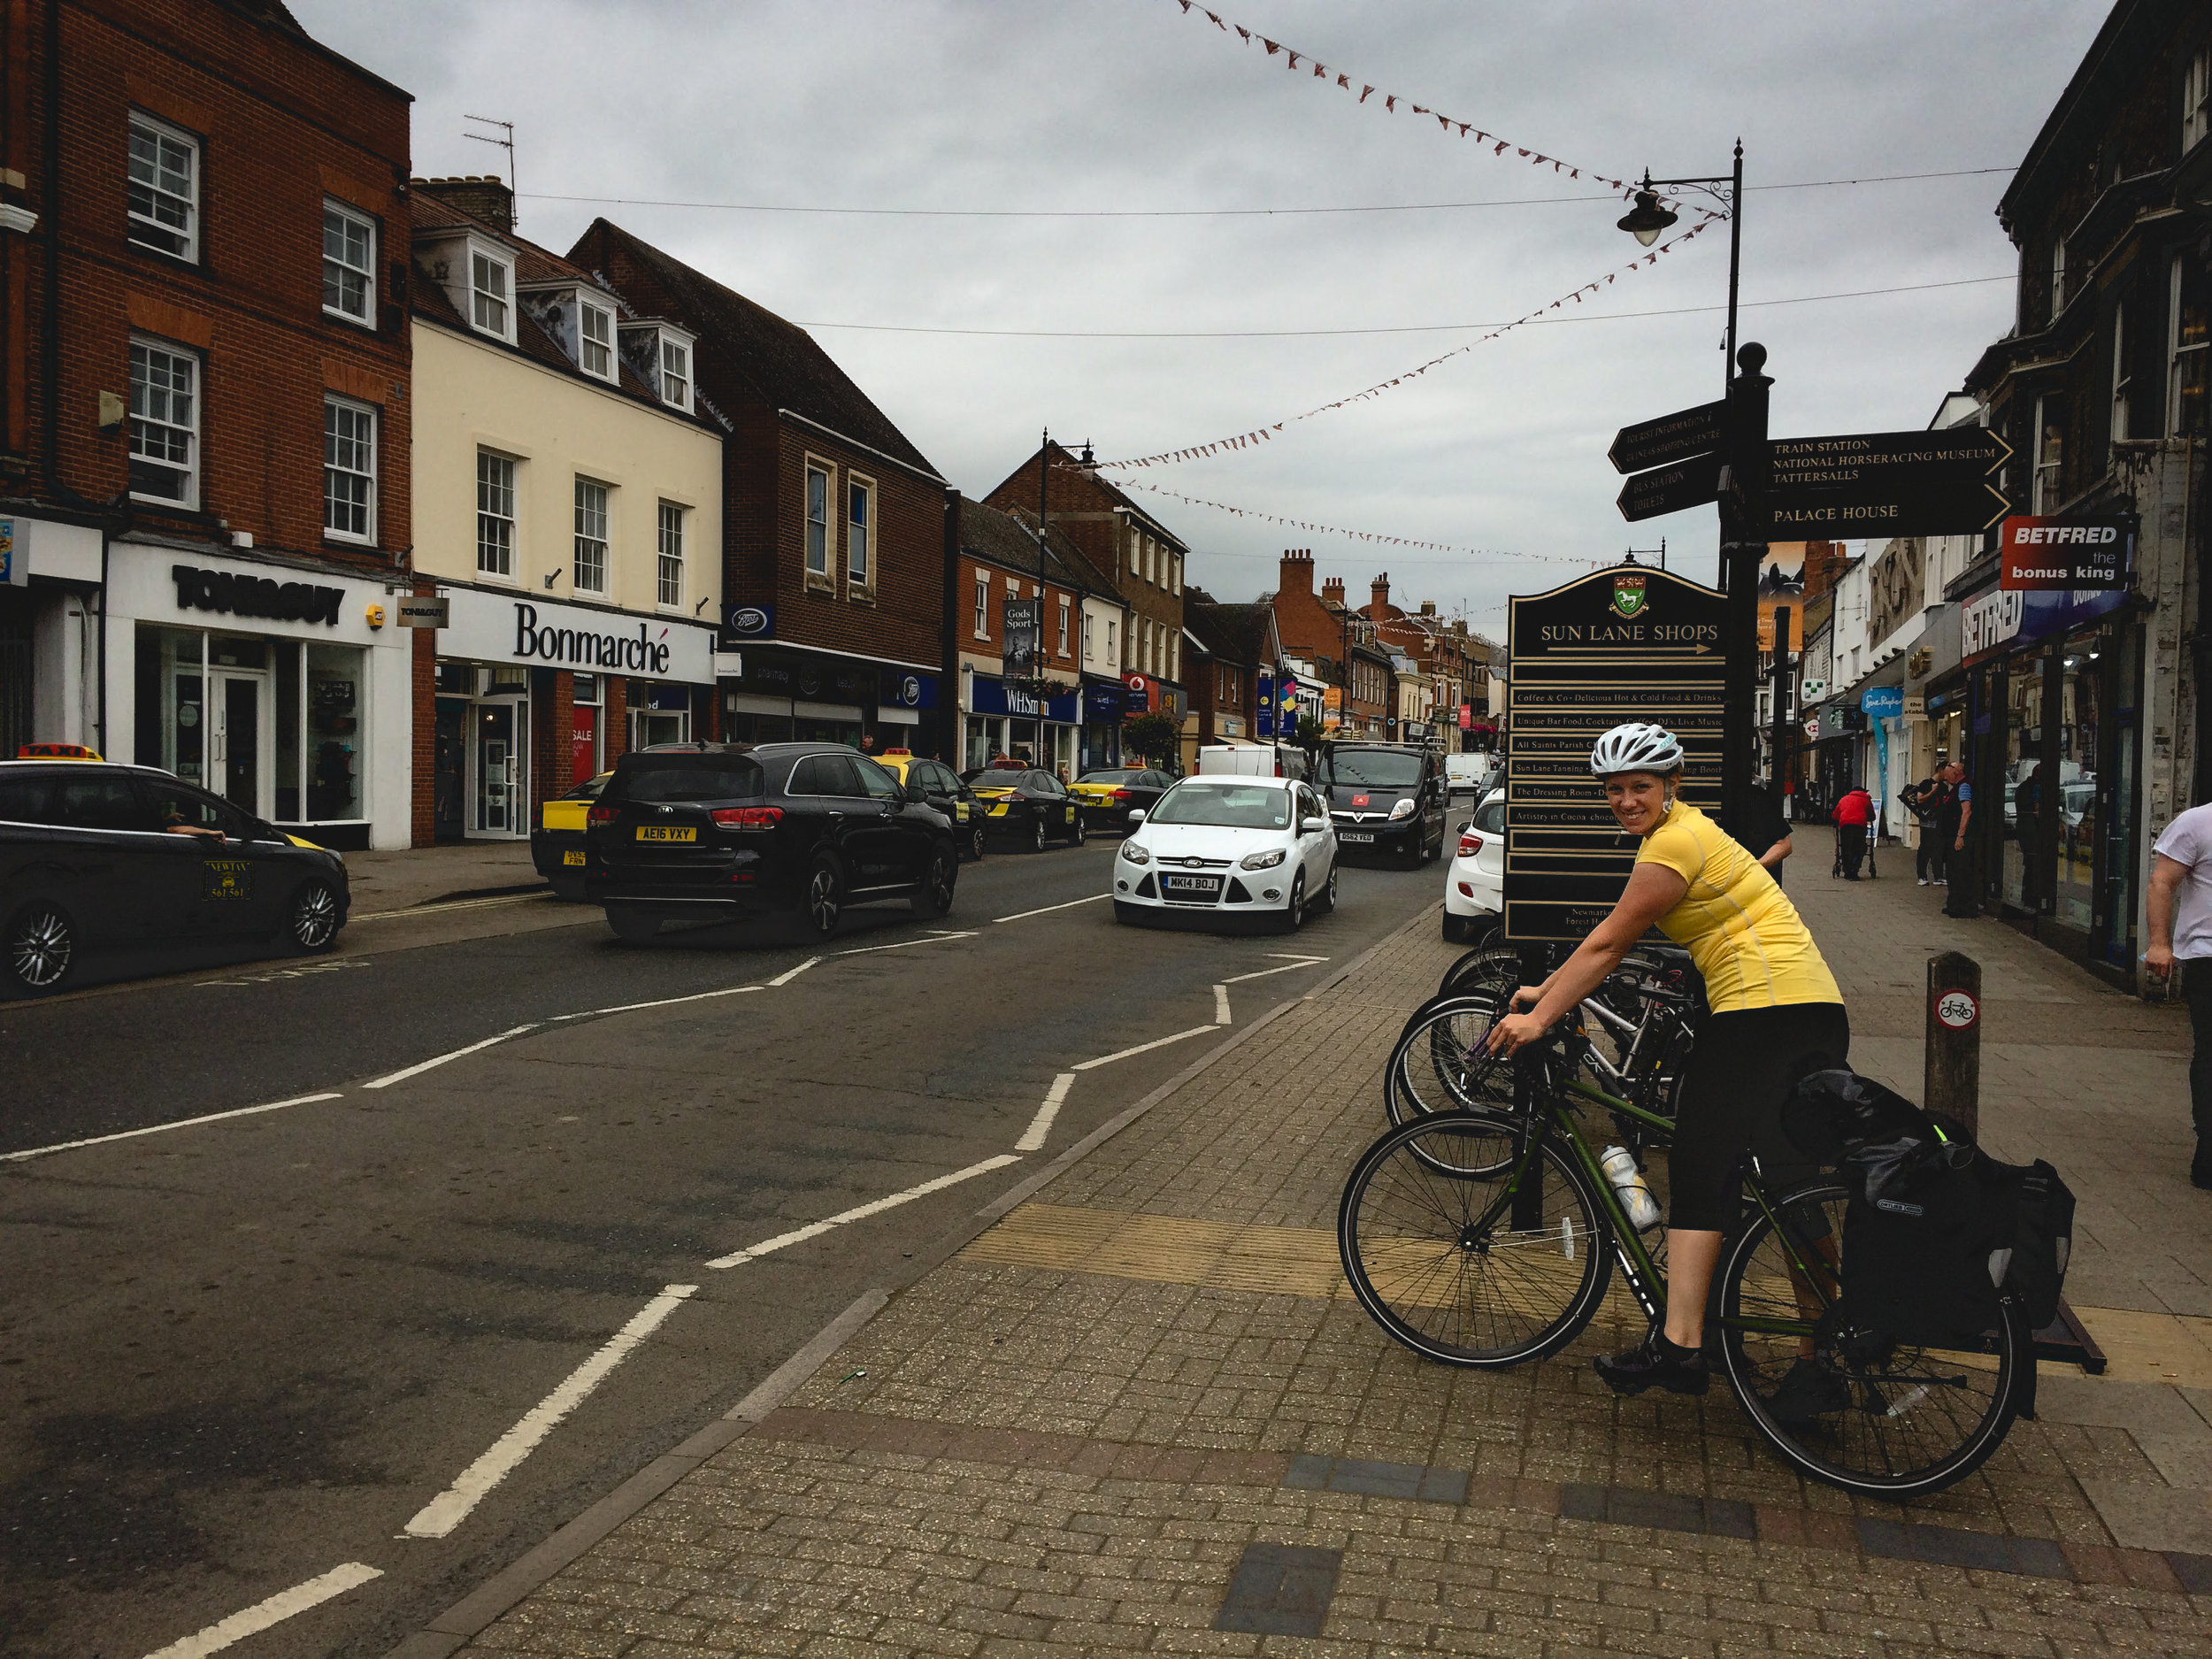 The main drag in Newmarket. You could really feel that people here weren't as comfortable with cyclists as Cambridge. But still better than the States.